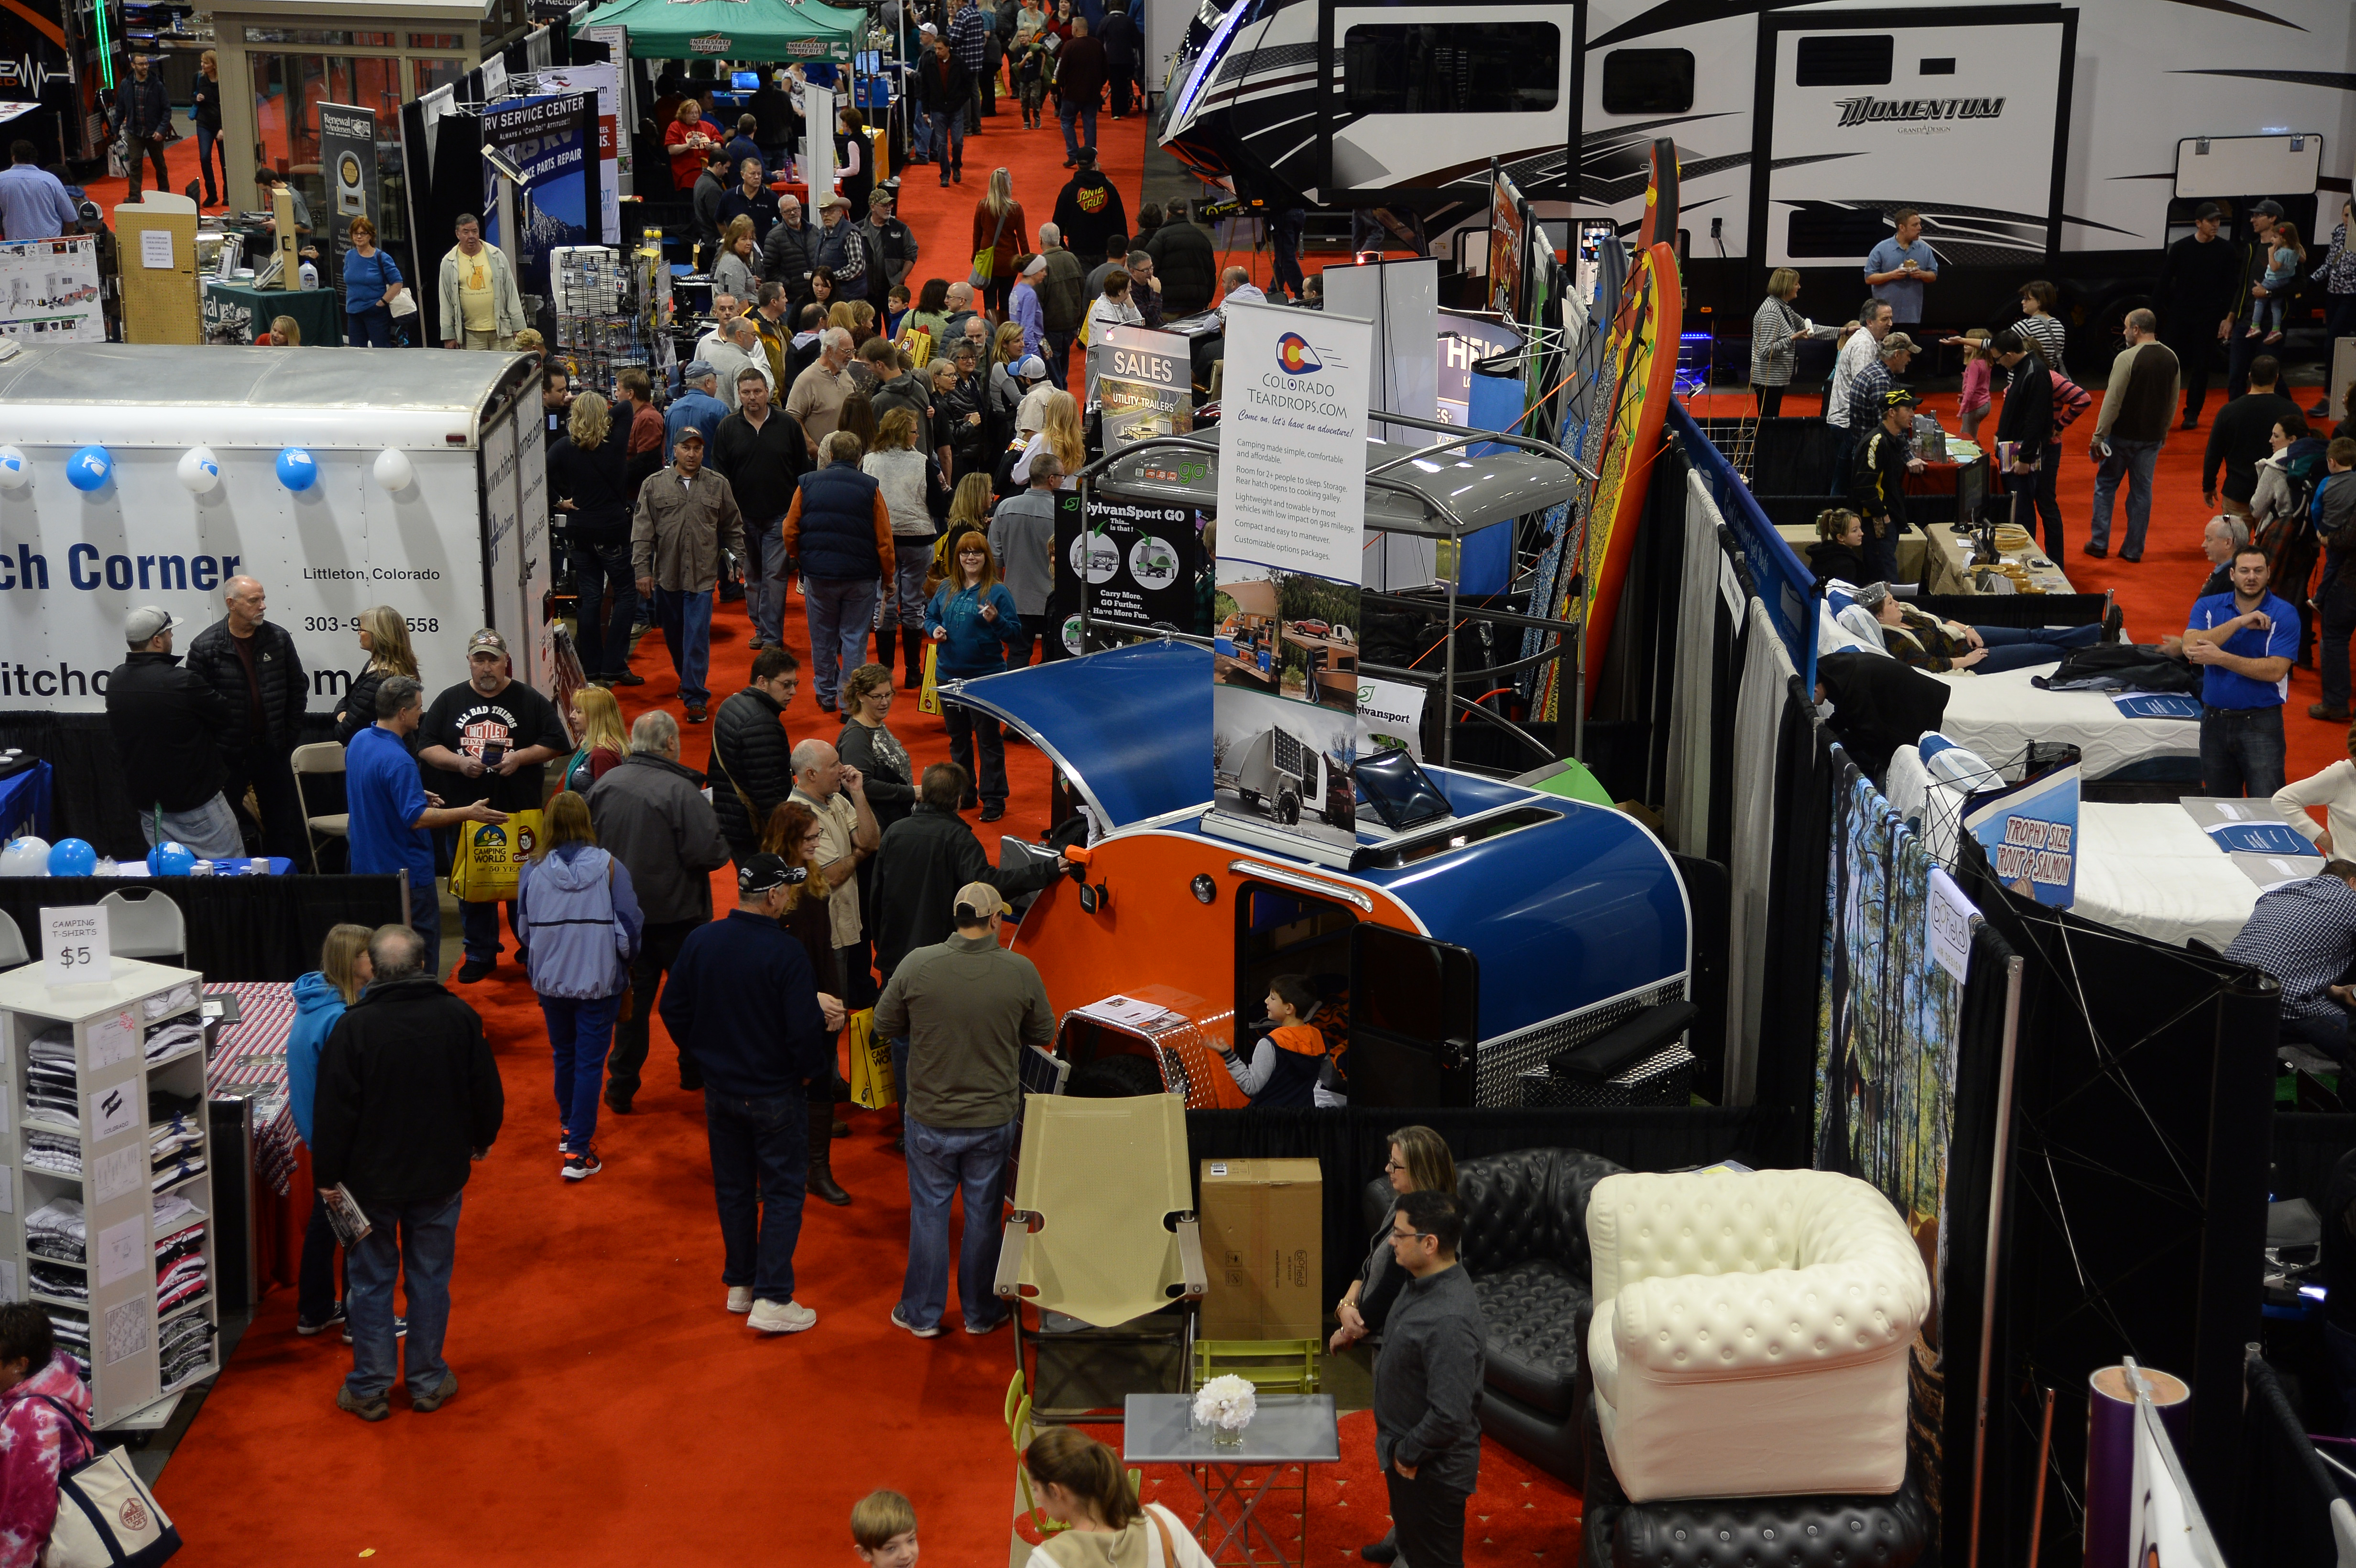 Greater Atlanta RV Show Brings The Latest Products In The RV - Car show world congress center atlanta